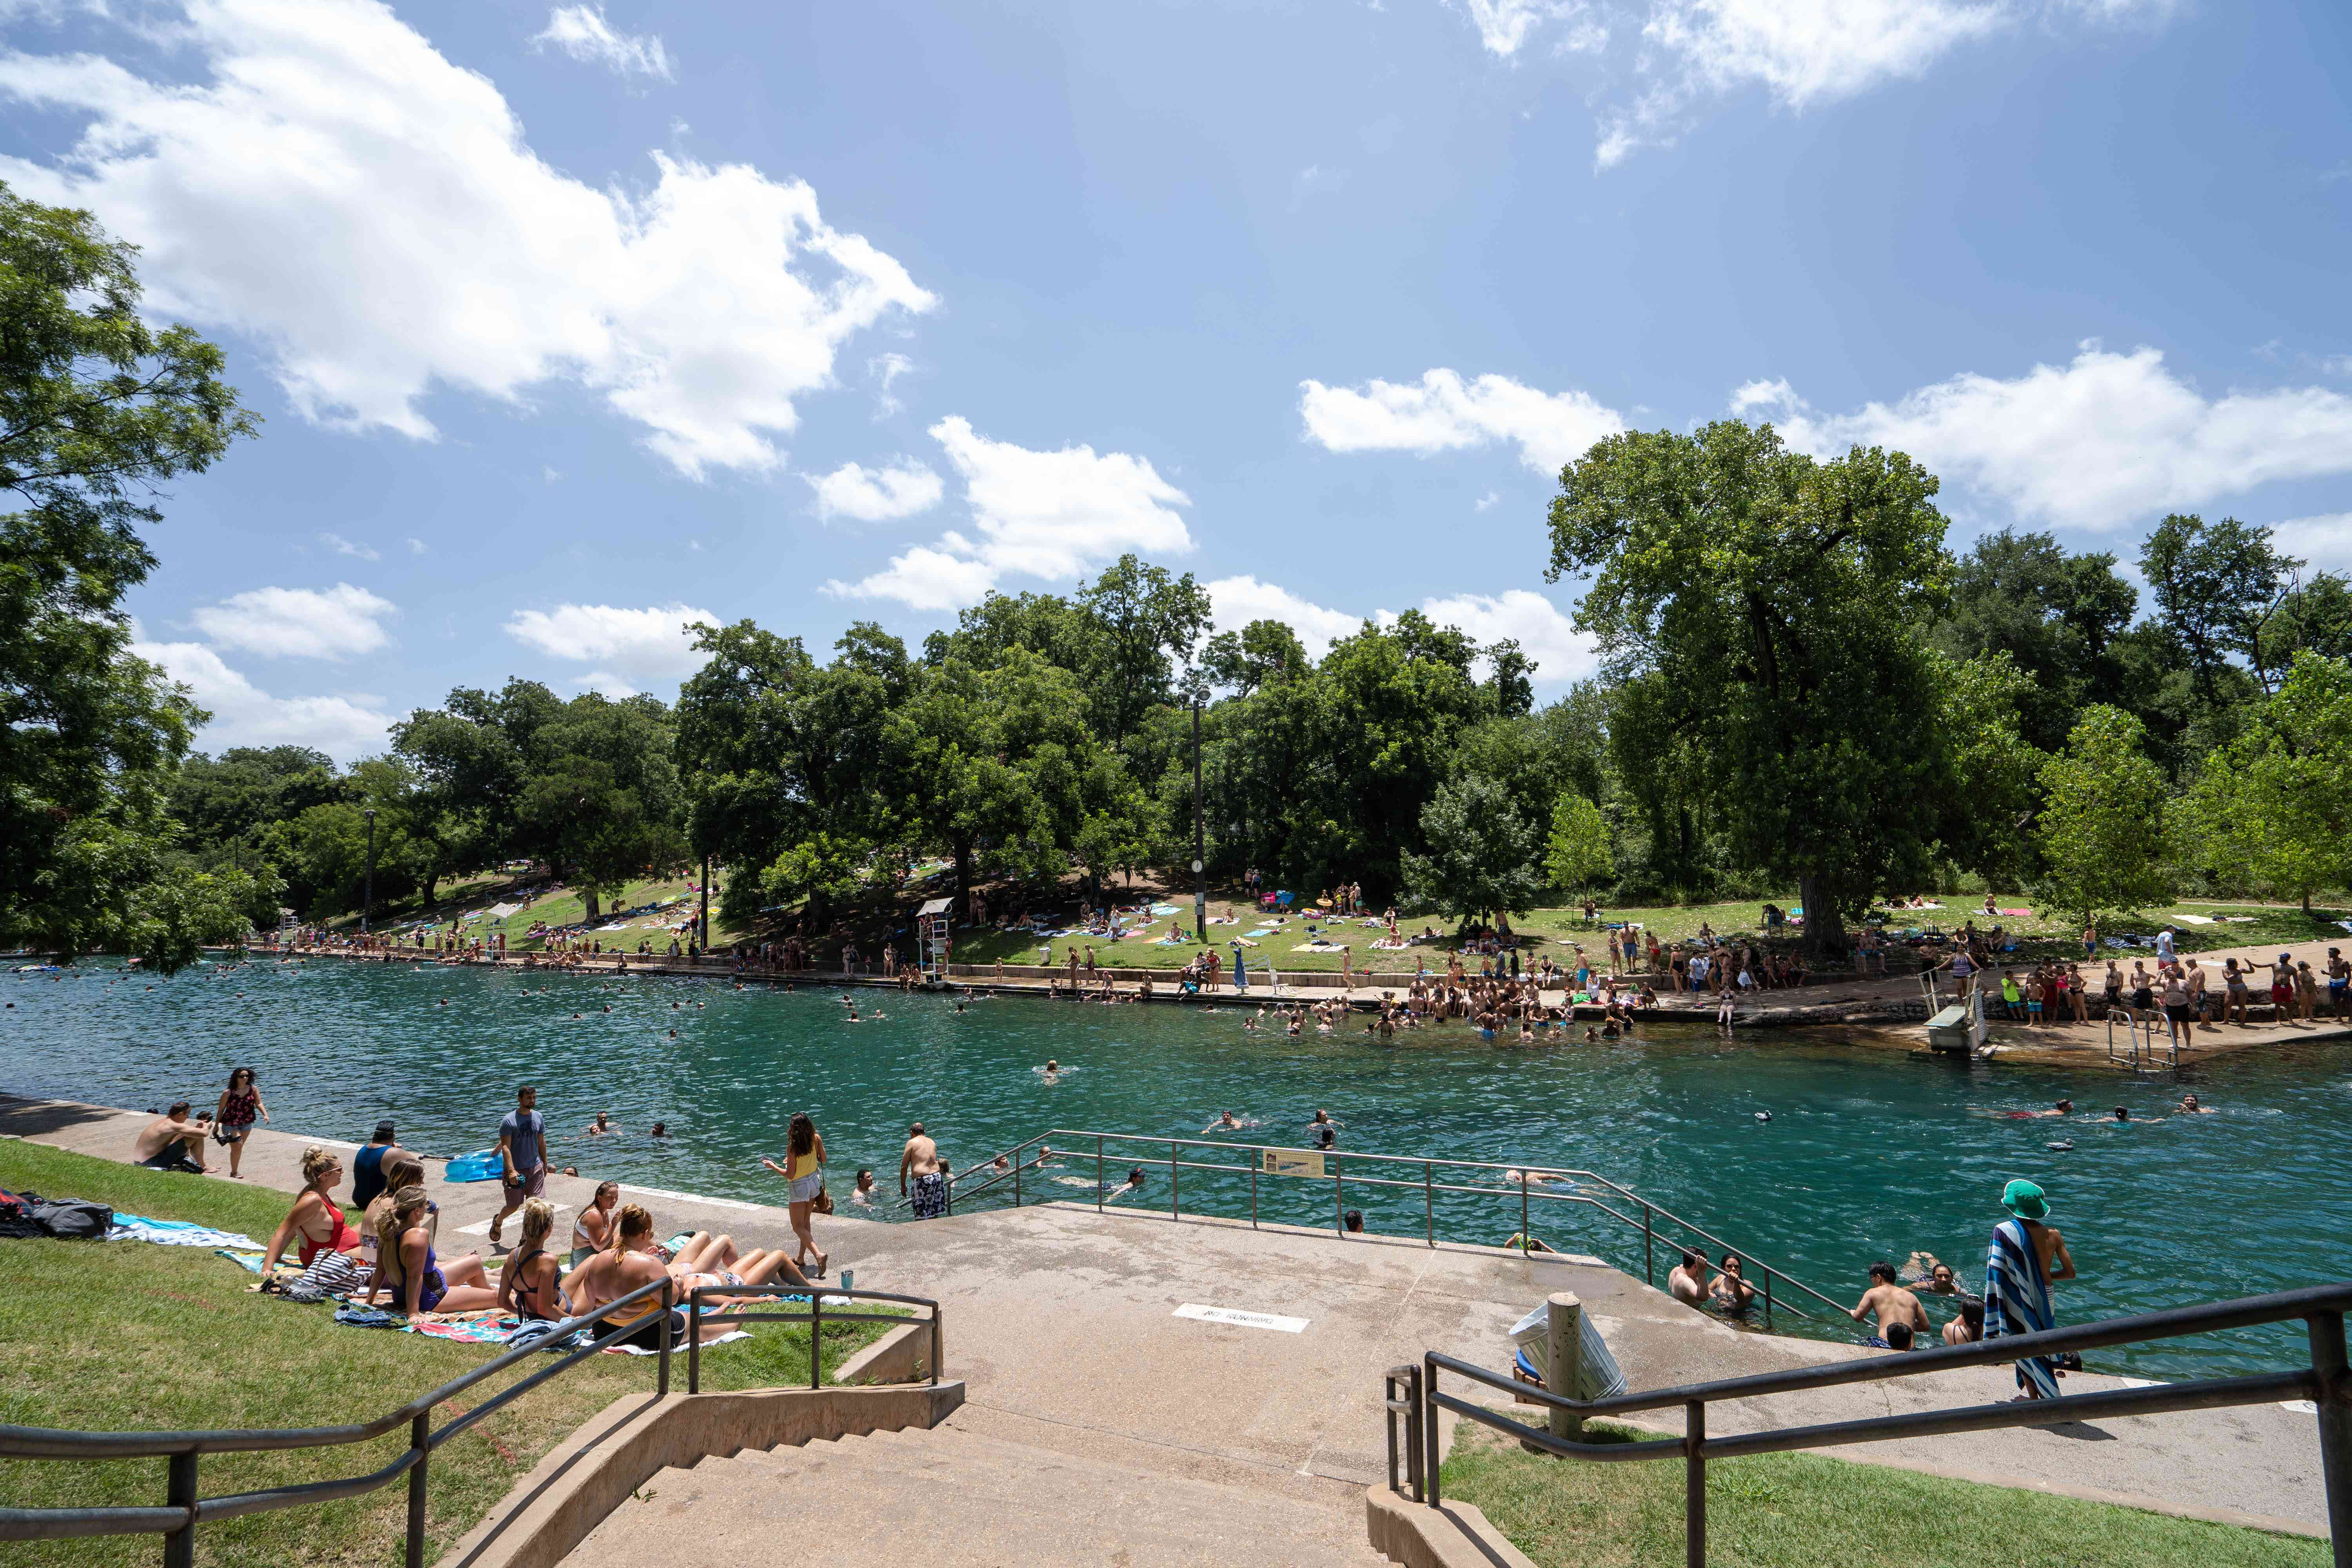 People hanging out on the walkway near Barton Springs